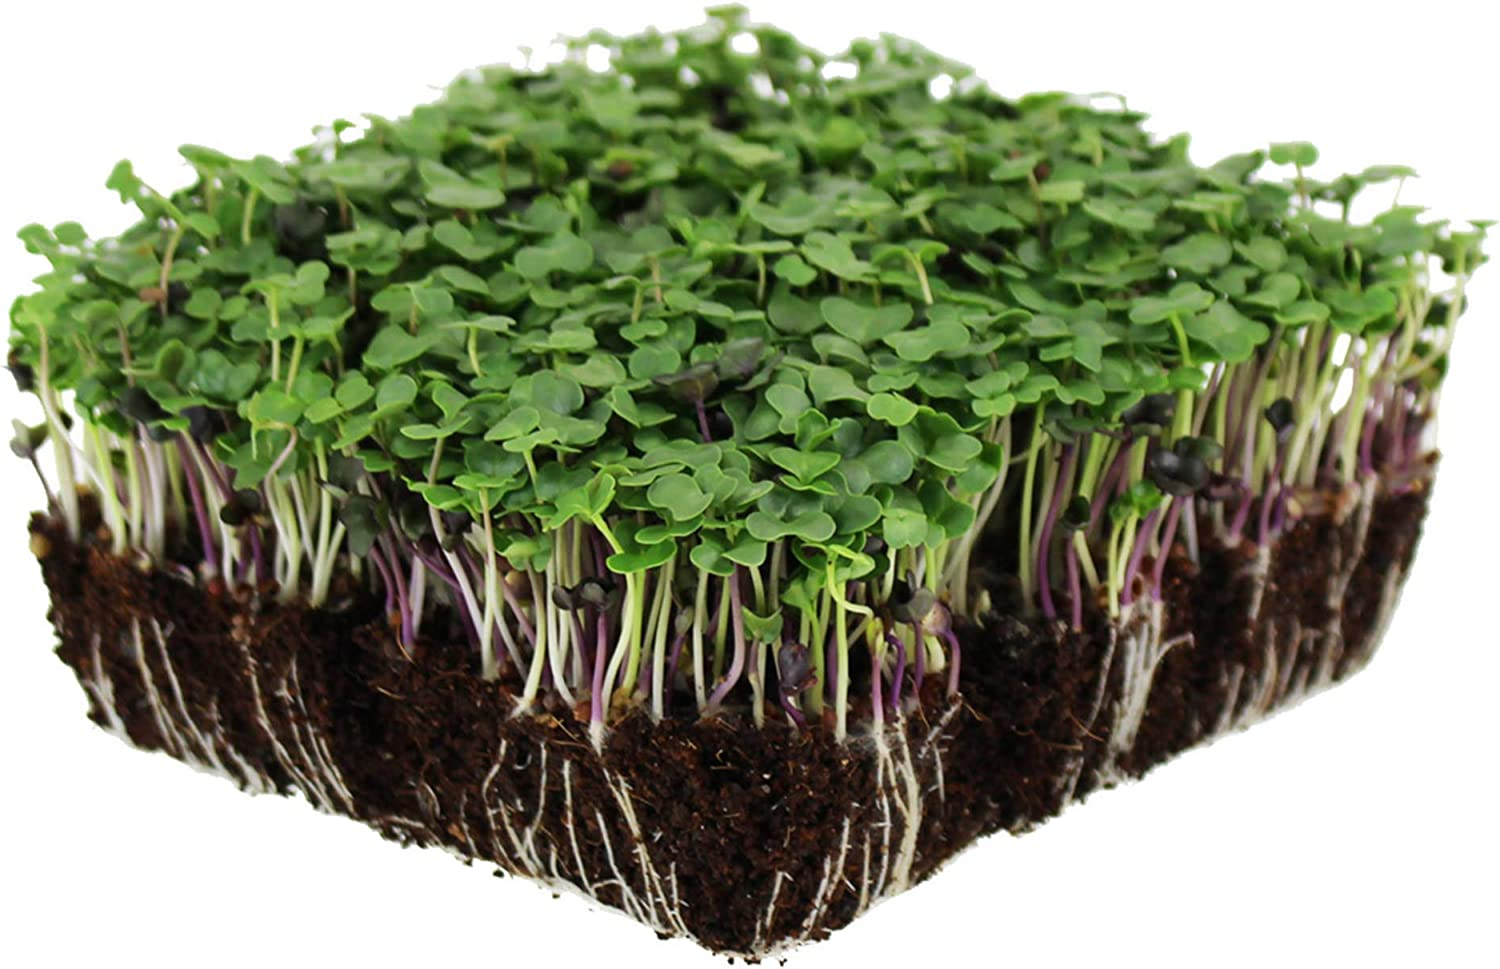 Basic Salad Mix Microgreens Seeds | Non-GMO Micro Green Seed Blend | Broccoli, Kale, Kohlrabi, Cabbage, Arugula, & More (5 Pounds)